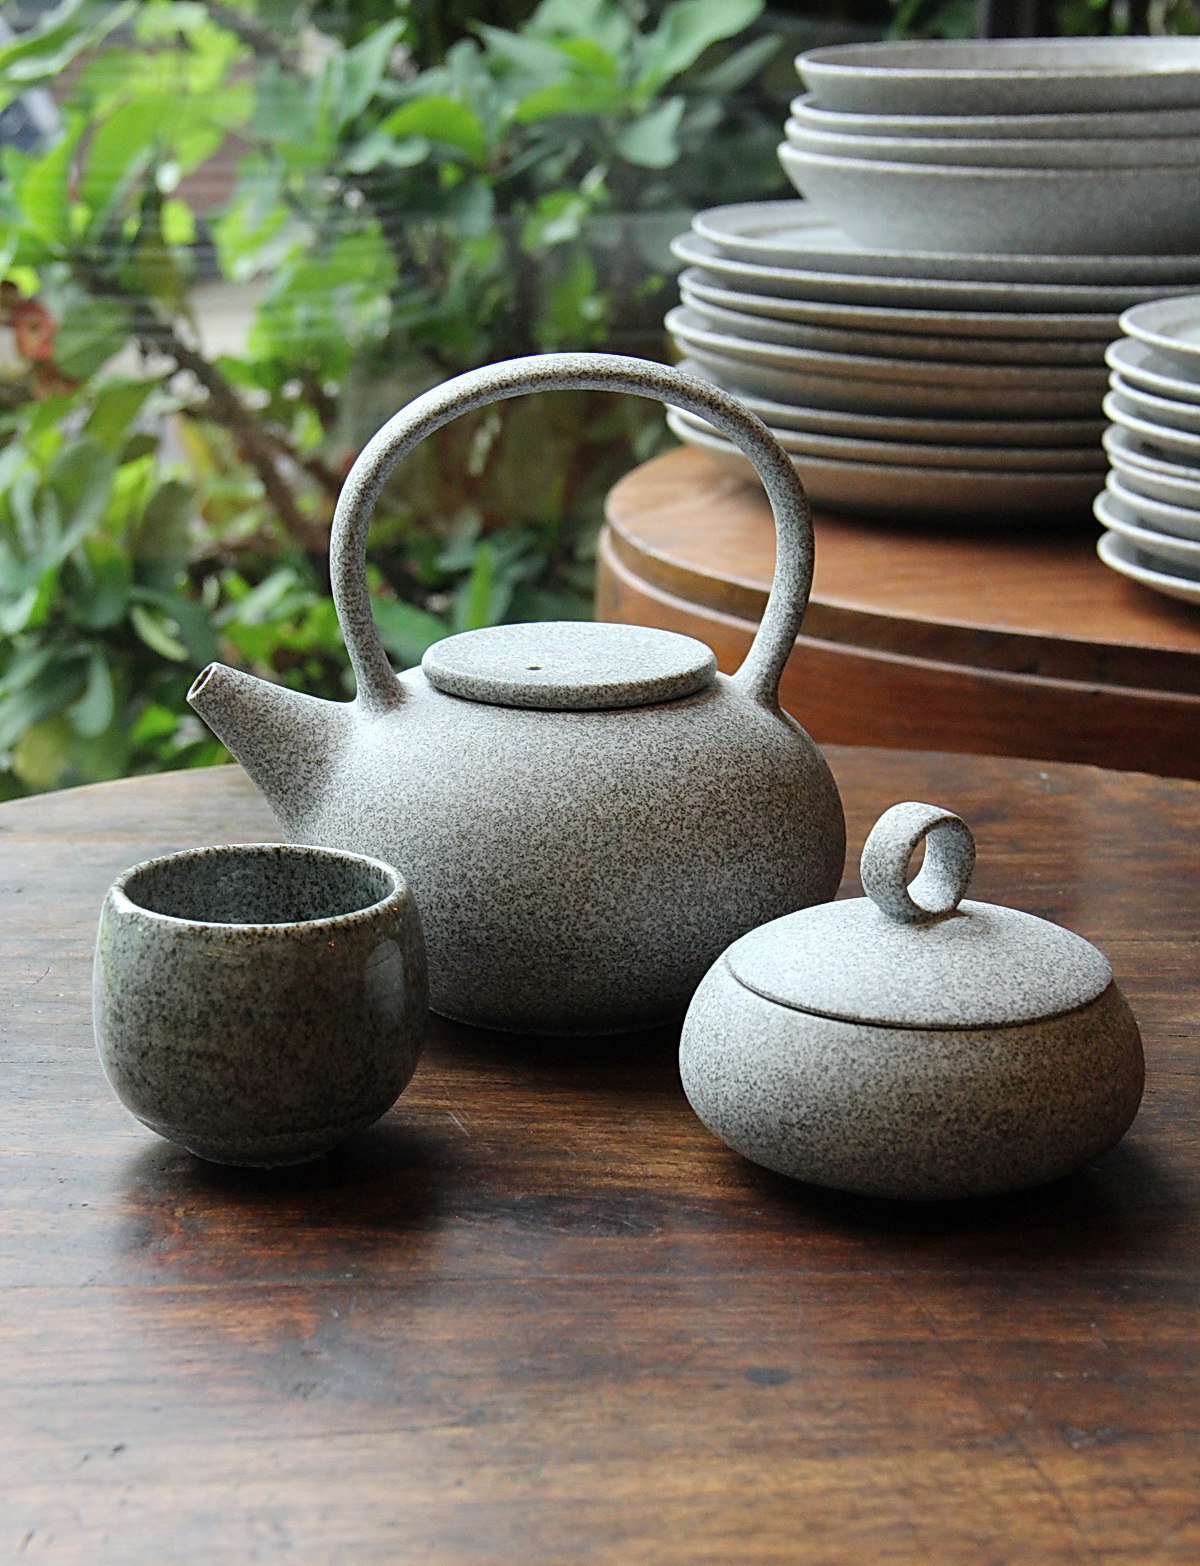 sandy tea set collection.JPG